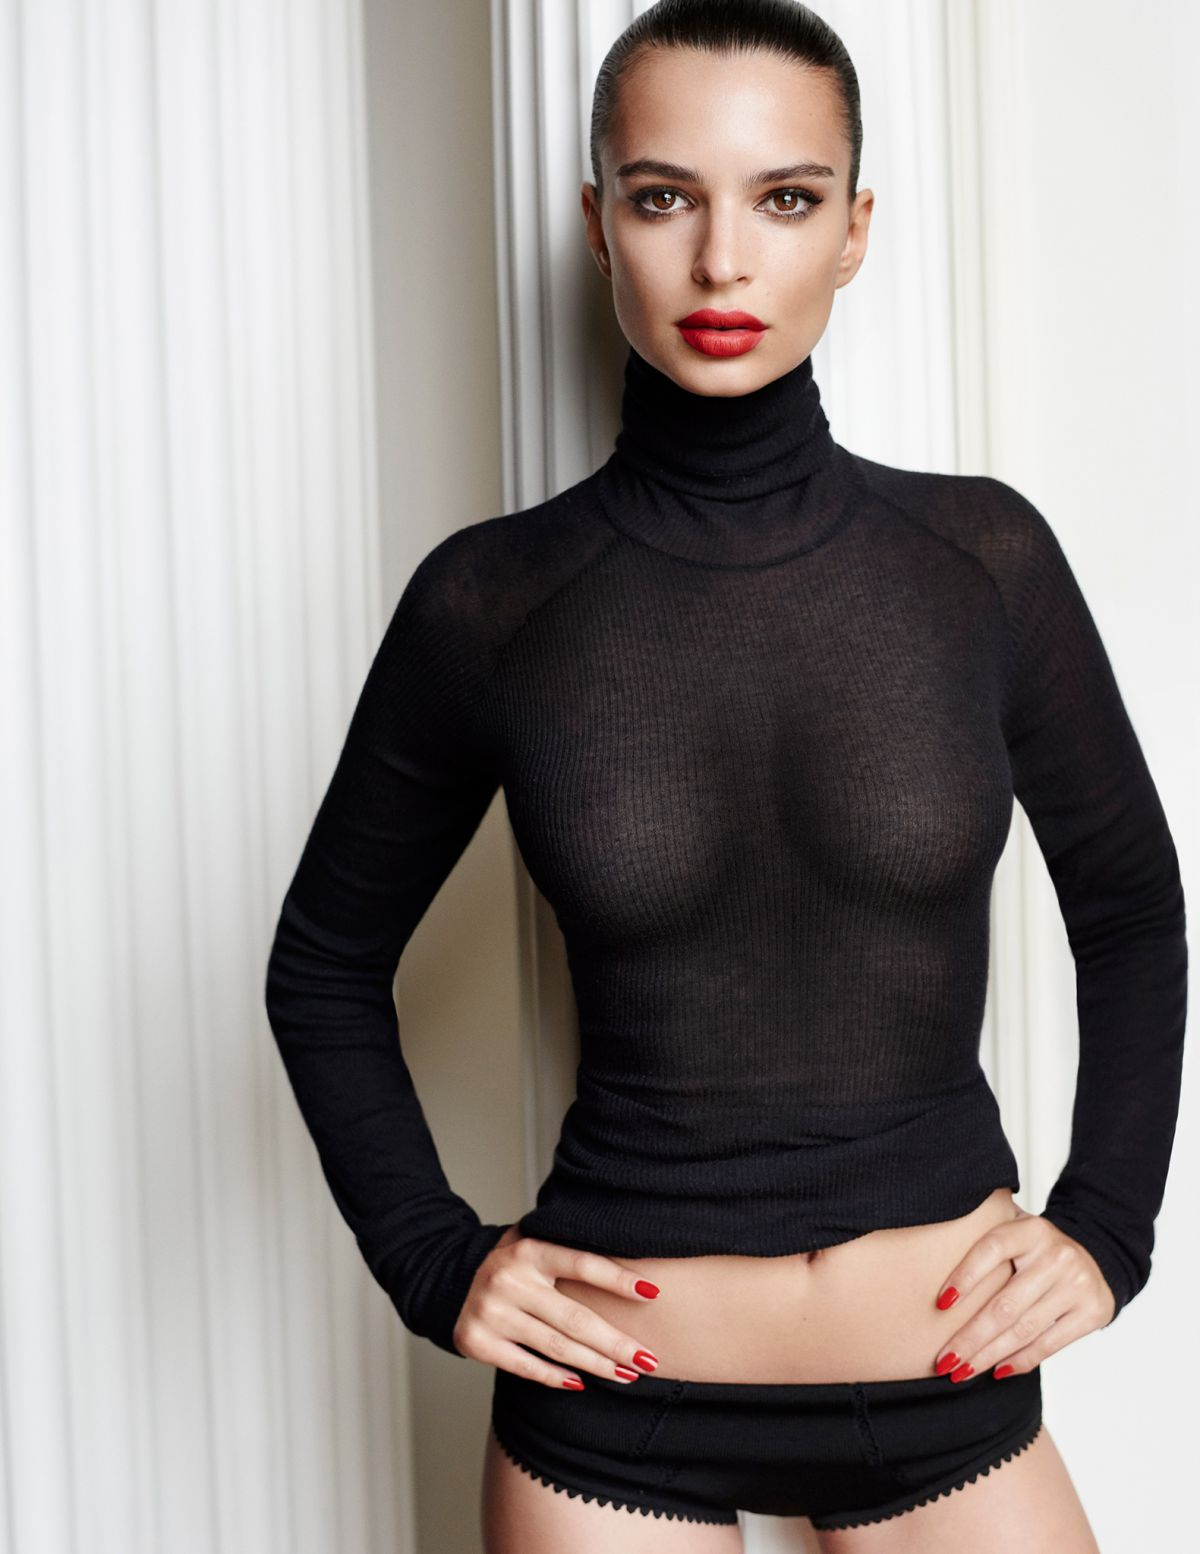 EMILY RATAJKOWSKI by Mario Testino  for GQ Magazine